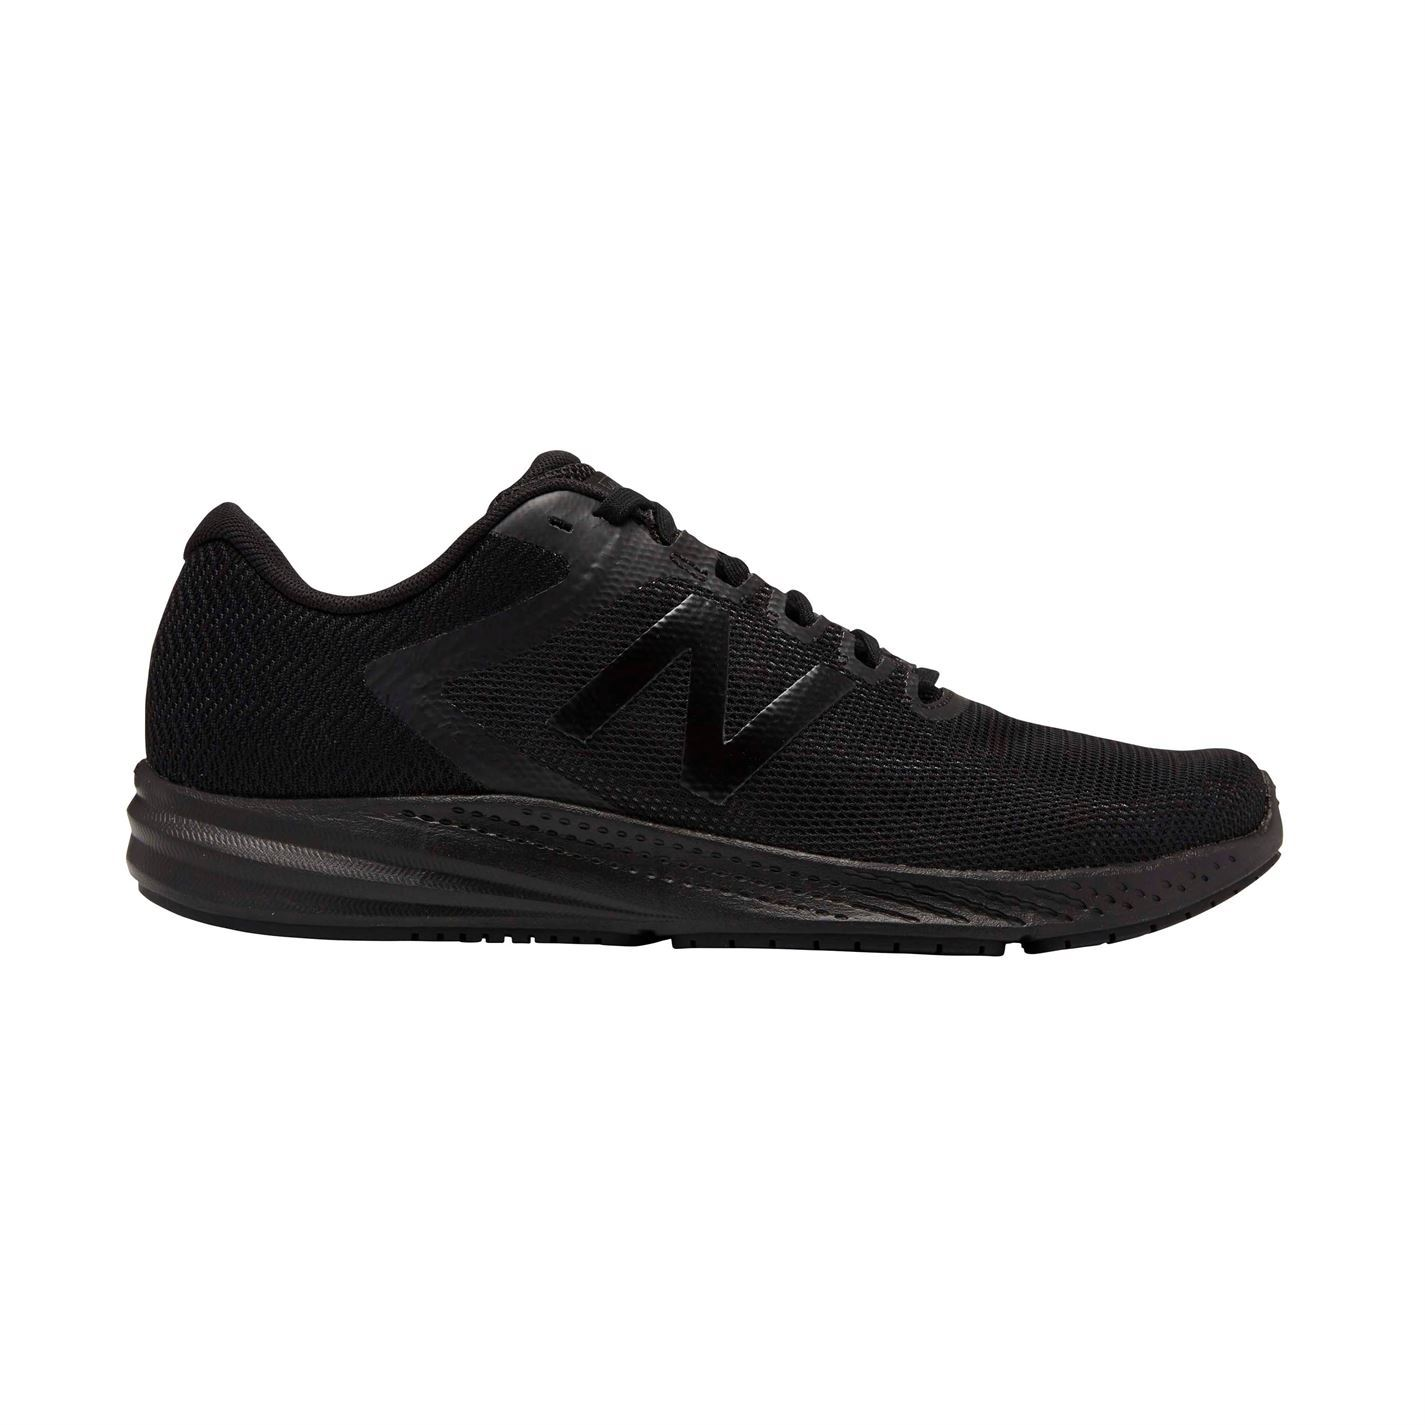 New Balance M490 Running Schuhes  Runners Herren Gents Runners  Laces Fastened Ventilated Mesh 61b37a